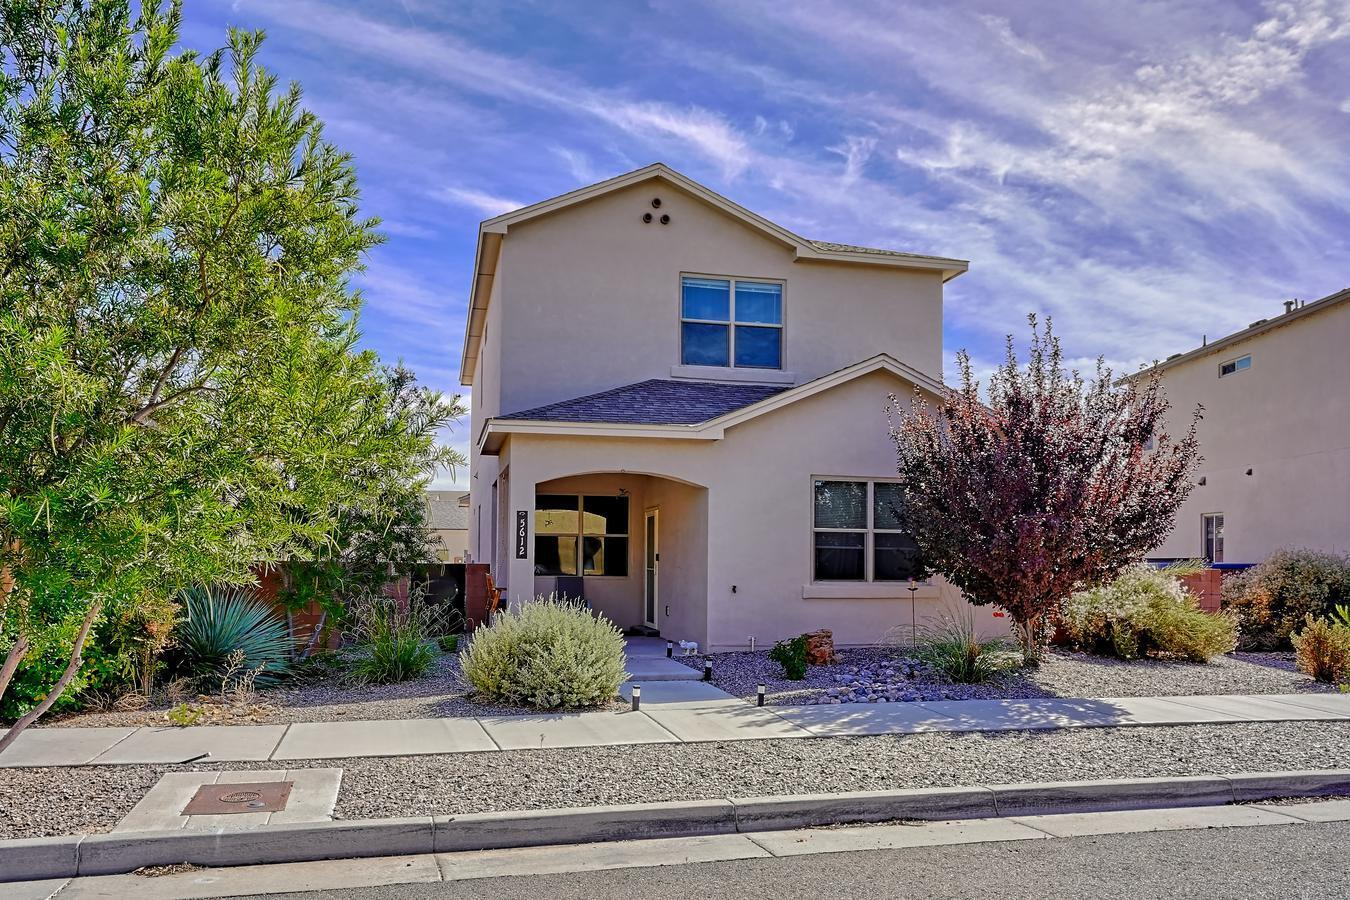 Welcome to the Netflix neighborhood of Mesa Del Sol. Come see this lovely home that allows you to be in a community built for connection. This growing walkable area is going to be a hot spot for a long time to come. You'r in luck because this home is available and ready for your loved ones to enjoy. The upgraded features of this home include the landscaped yard with dining space, smart features for lights, fans, locks and so much more. A fantastic kitchen near the laundry, living and garage. Upgraded cabinets in the 1/2 bath and laundry. Water softener, reverse osmosis system and increased garage storage. This home has it all don't miss this one.